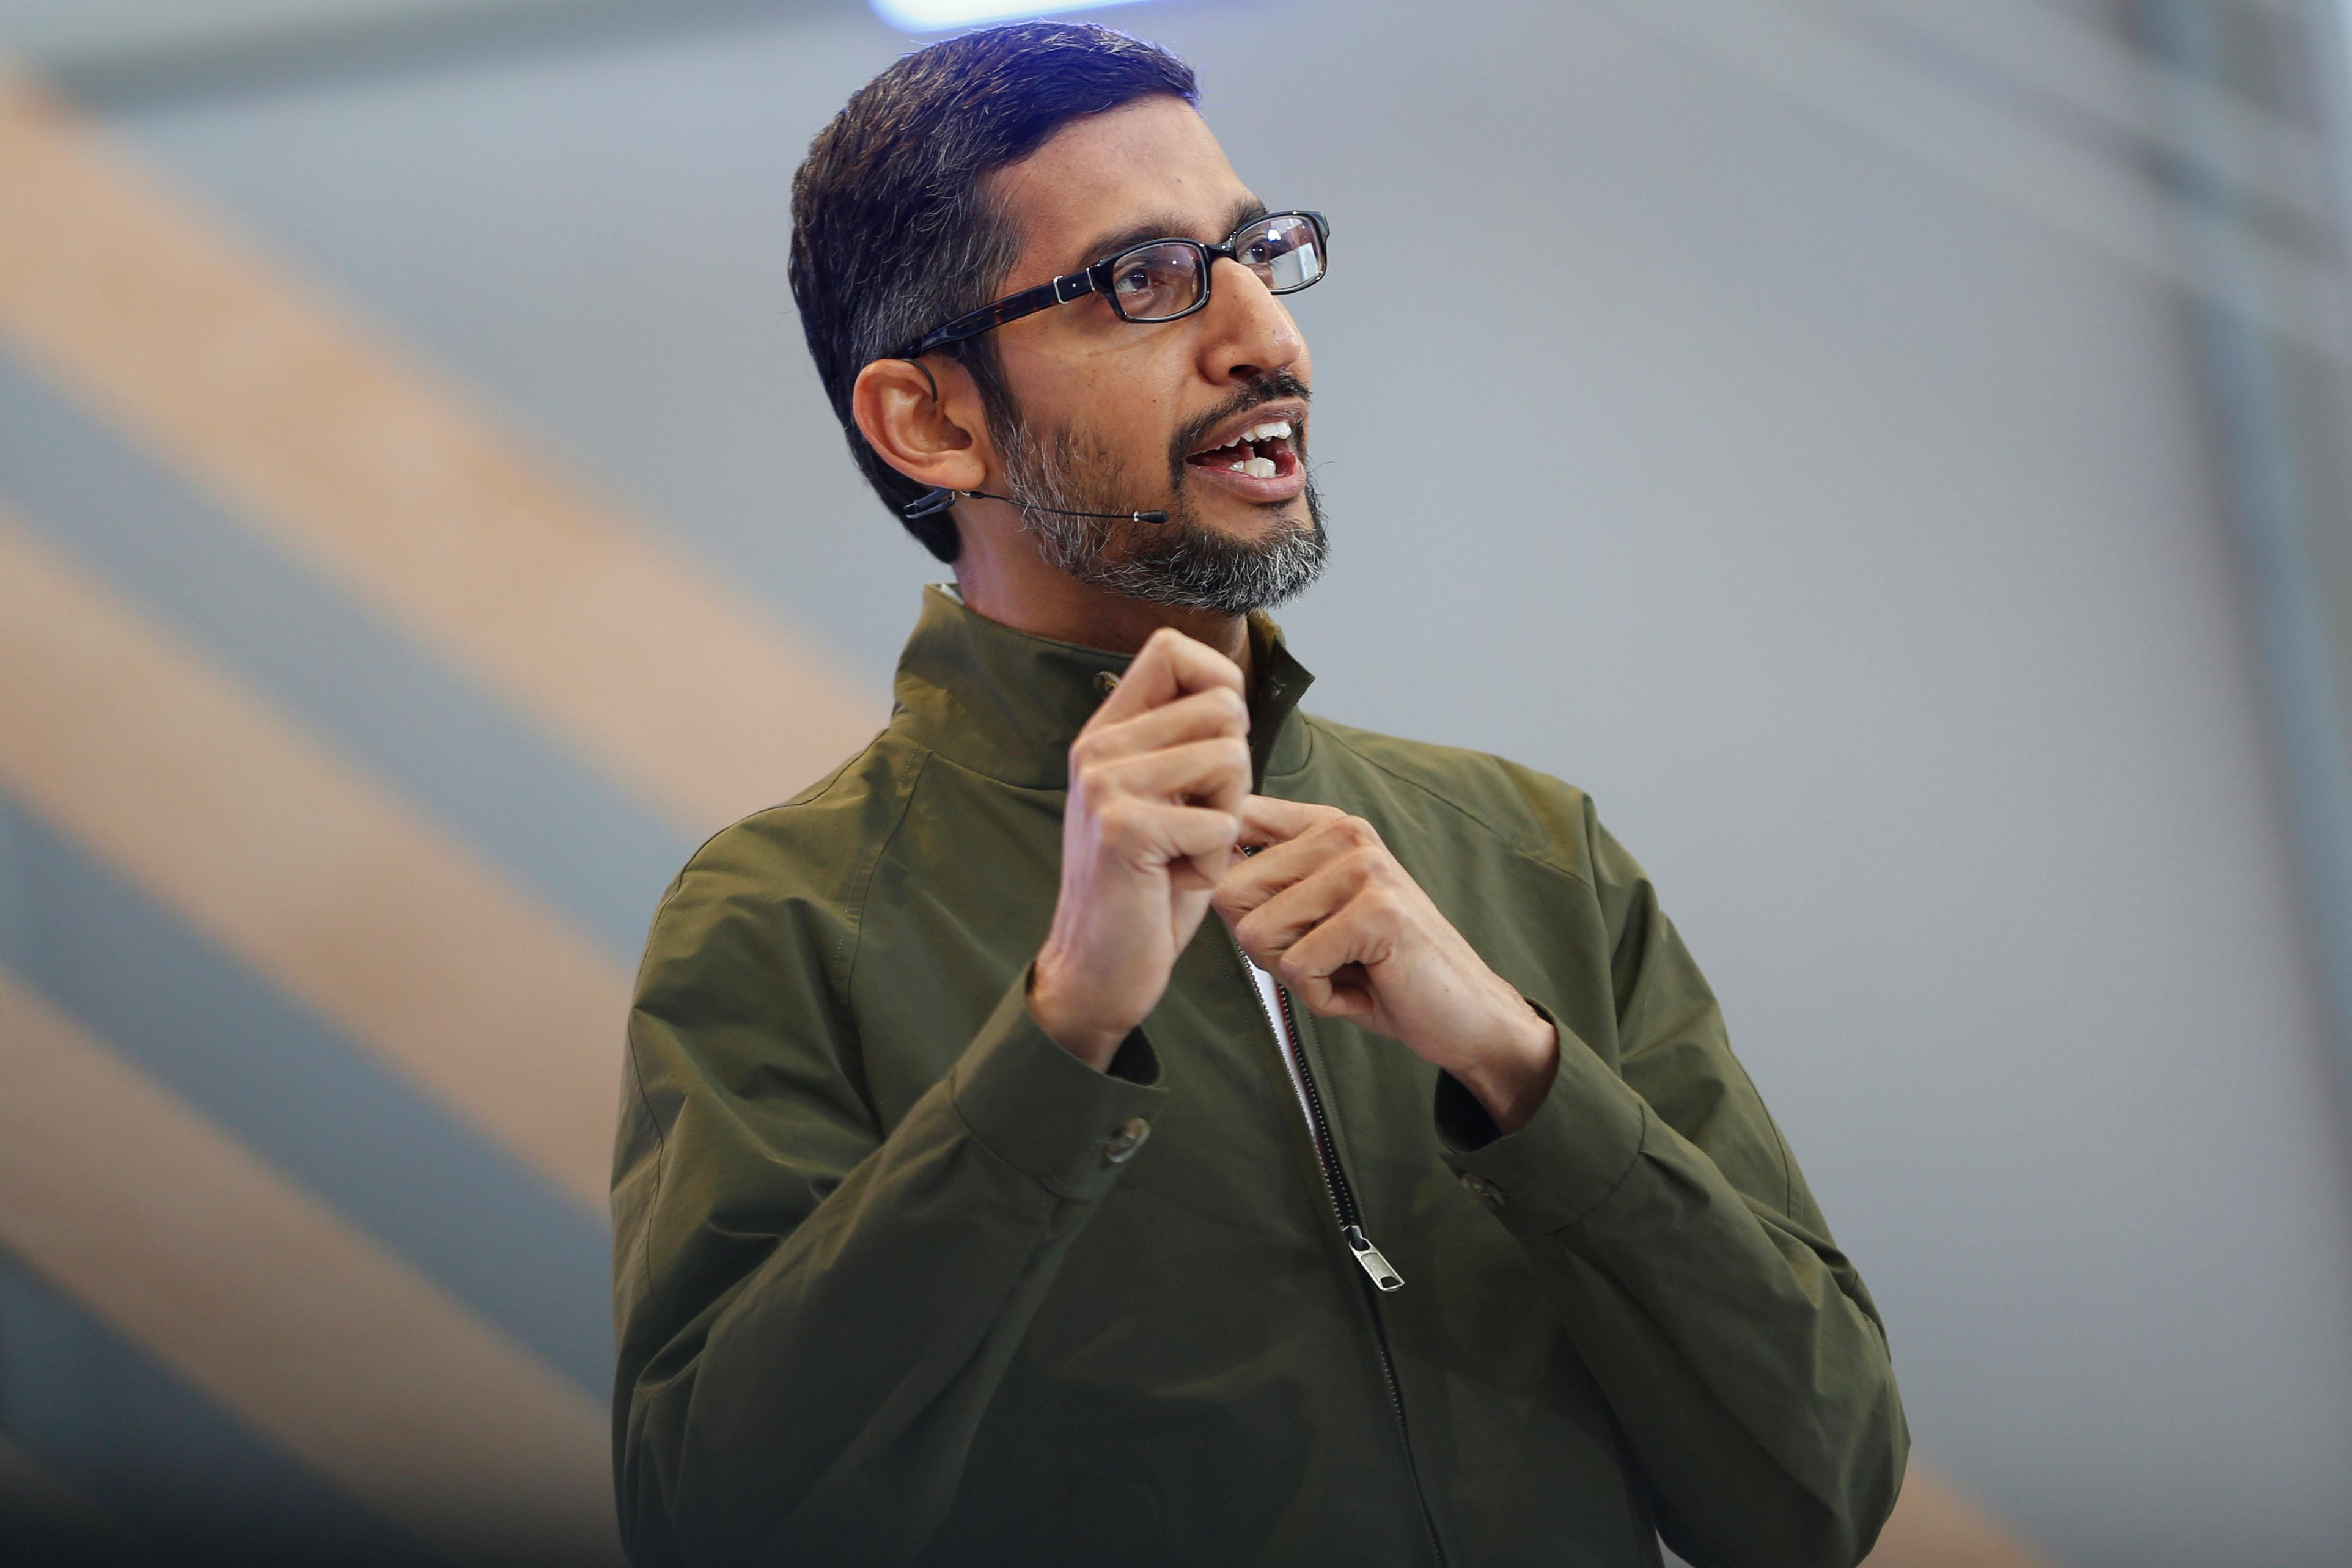 Google CEO will testify before U.S. House on bias accusations